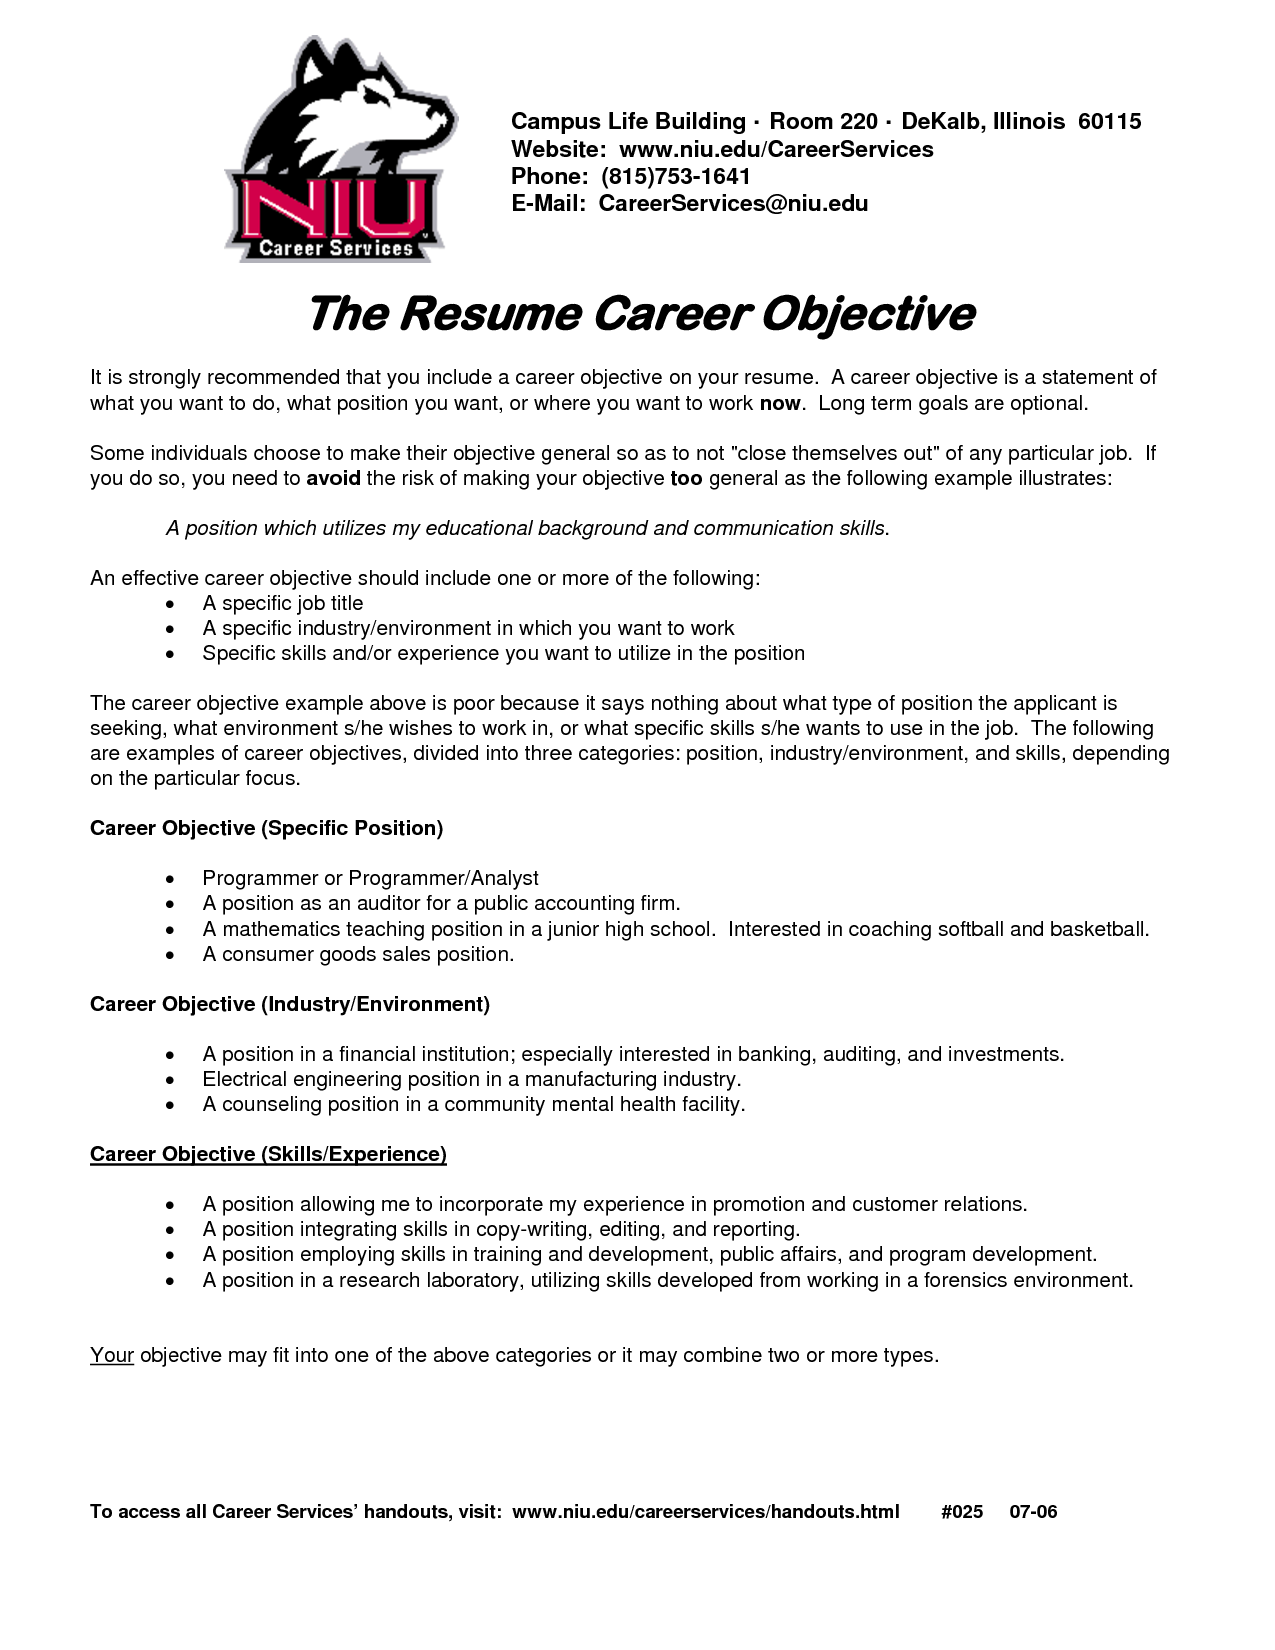 Good Work Objective For Resume Sample Job Objective Resume Writing Career  Objective Statement .  Objectives In Resume Examples